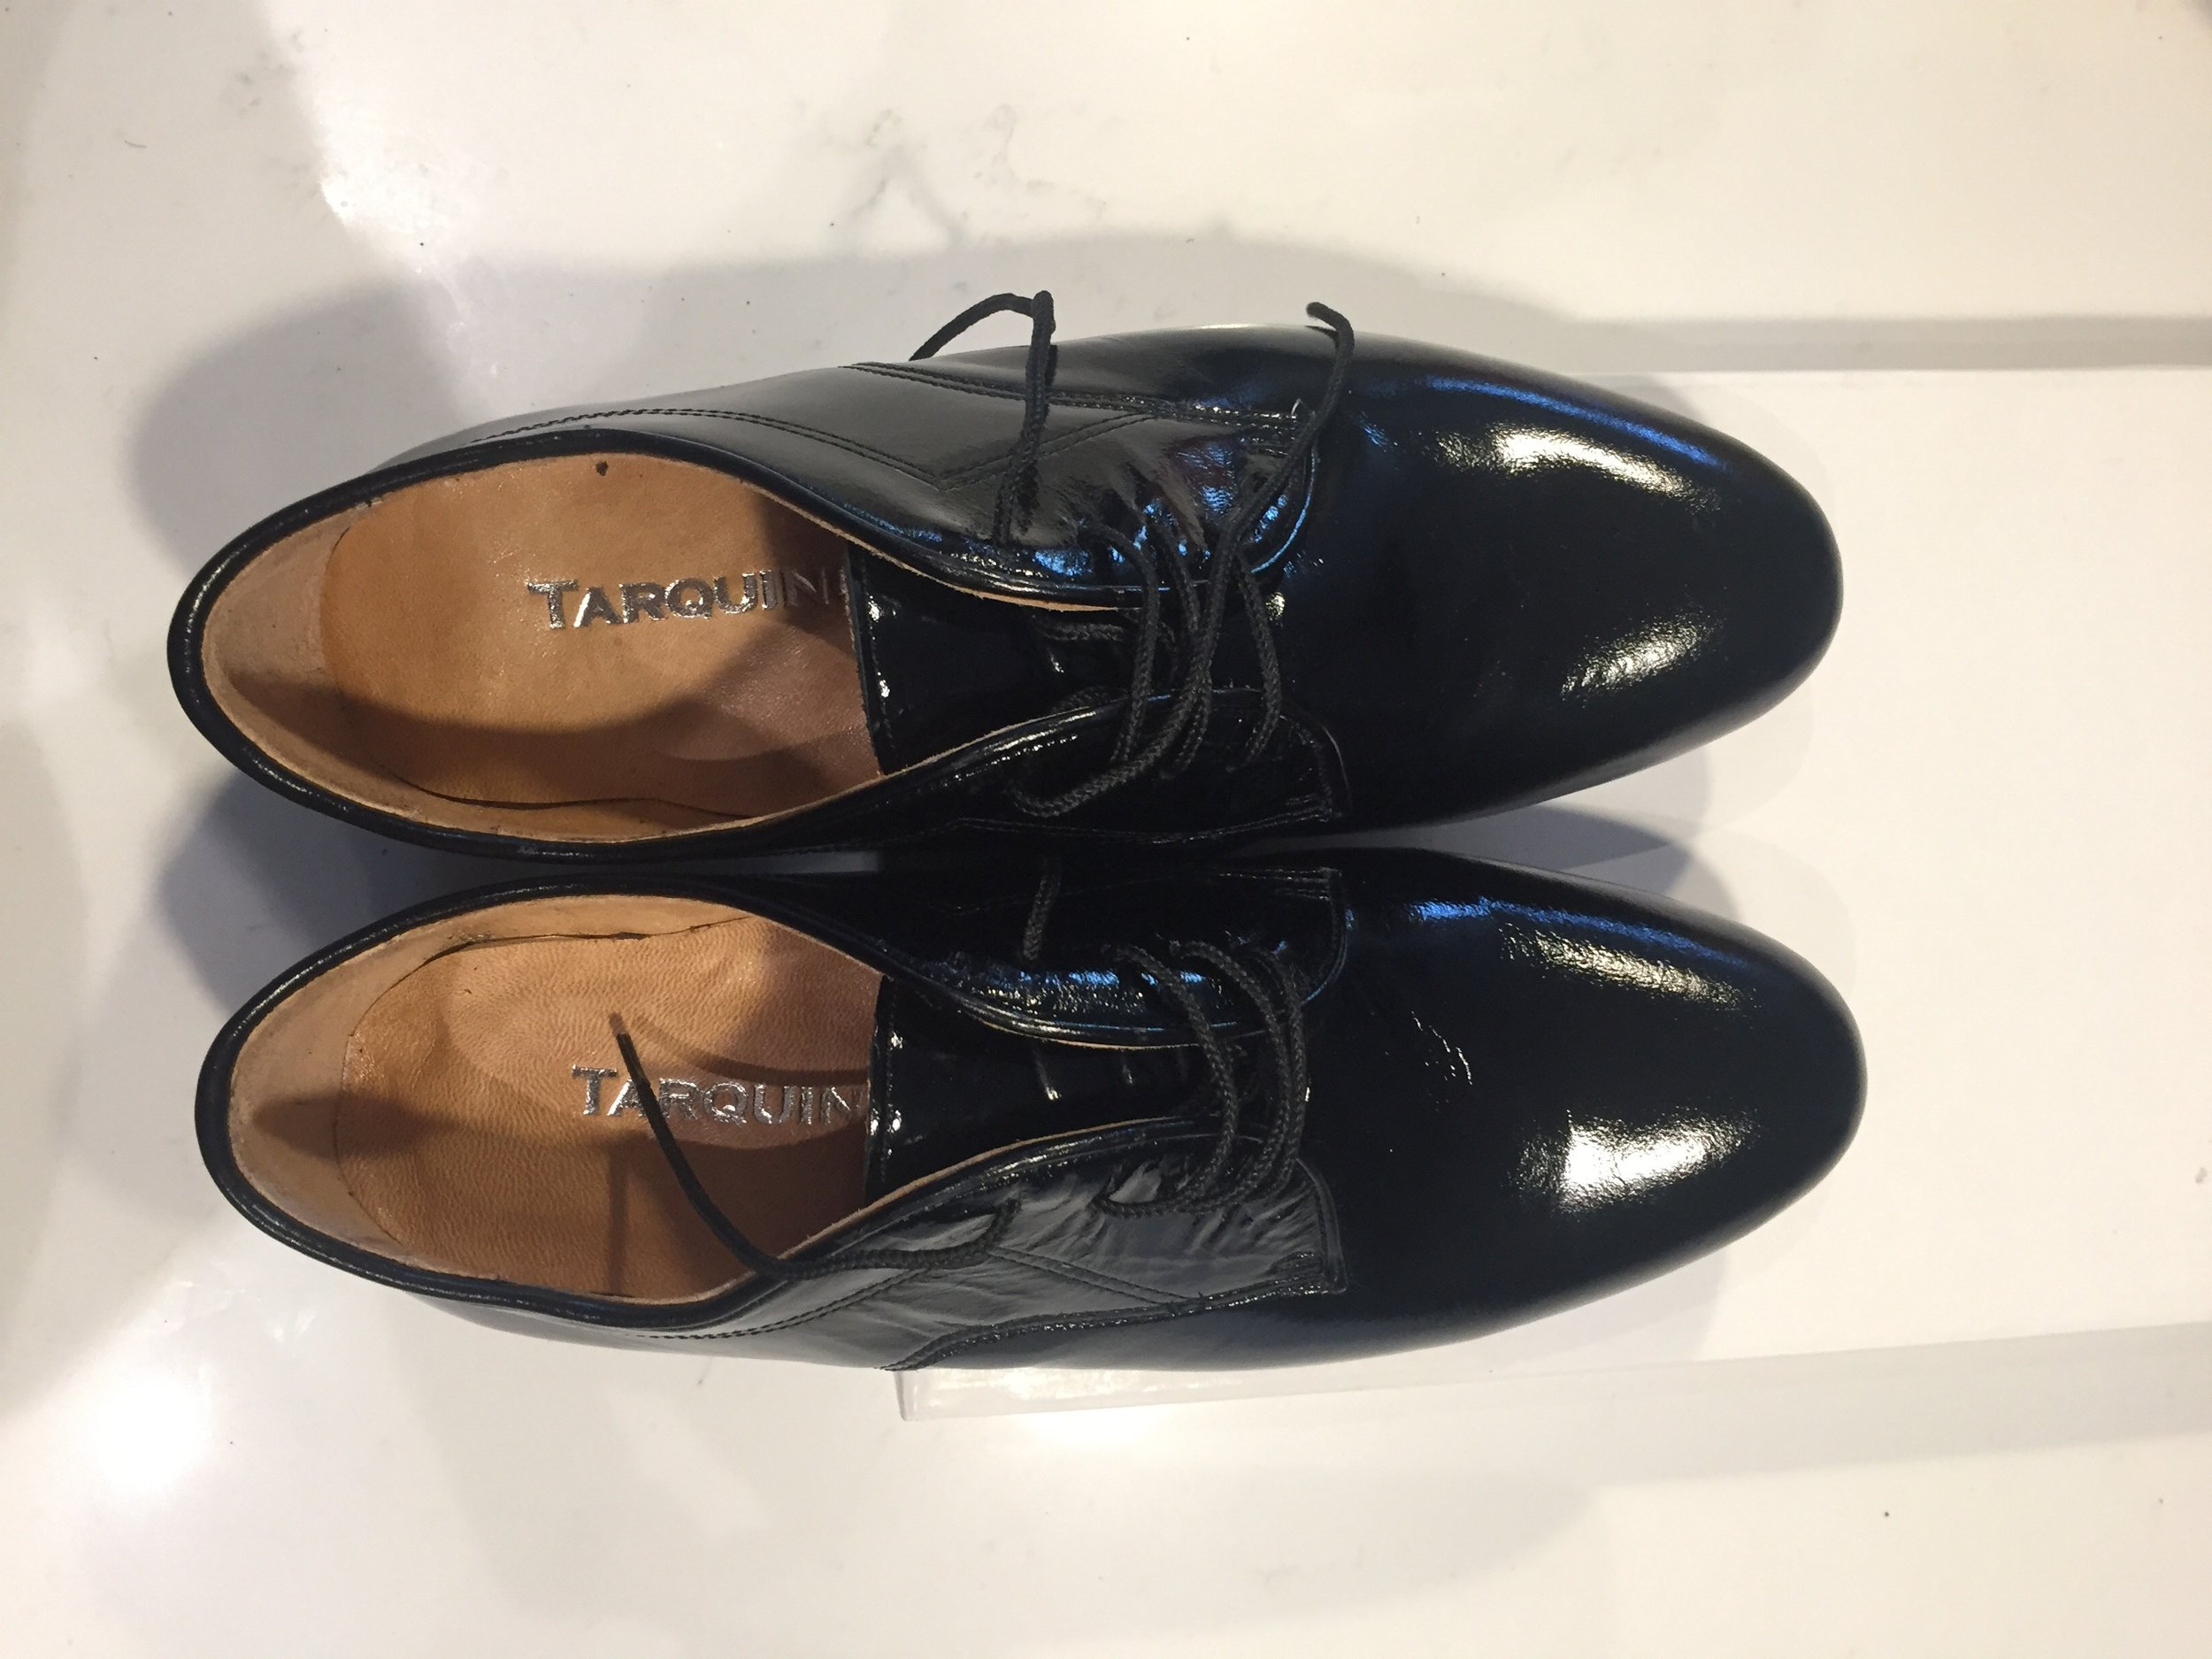 Tarquino Shoes, Black Patent Leather, Brand New, US Size 11 (European 44), $110